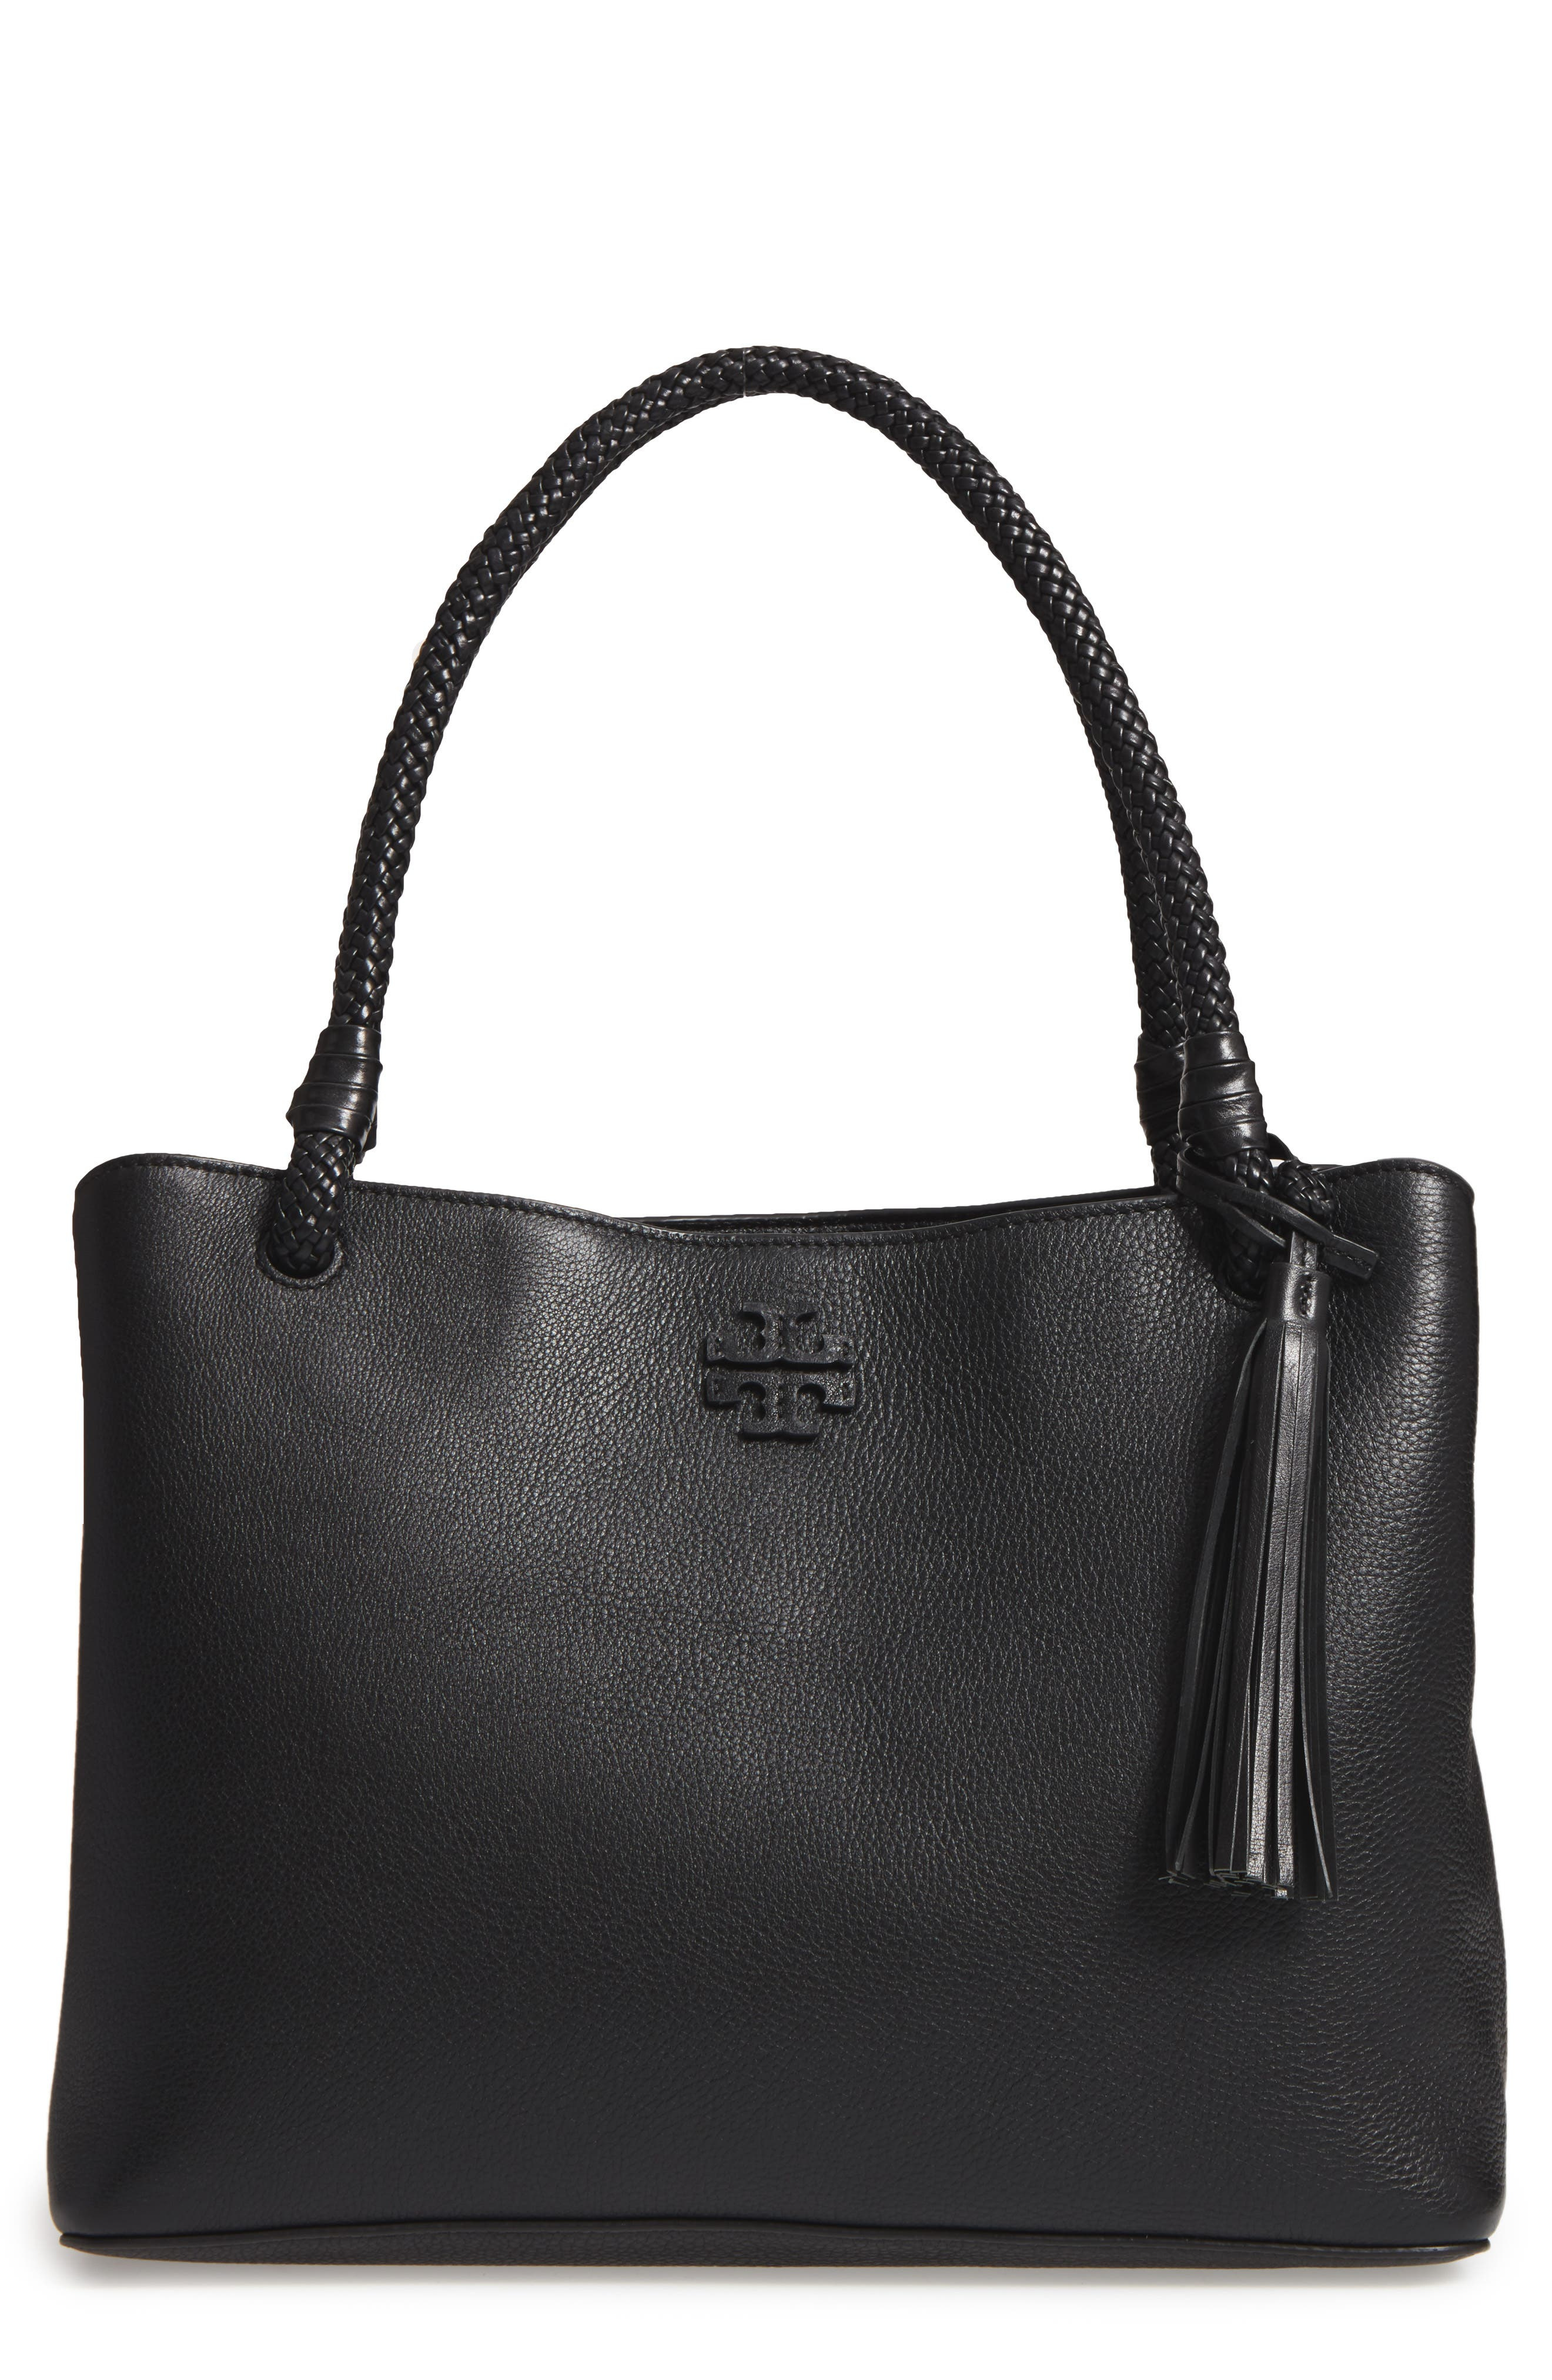 Taylor Triple-Compartment Leather Tote,                             Main thumbnail 1, color,                             001